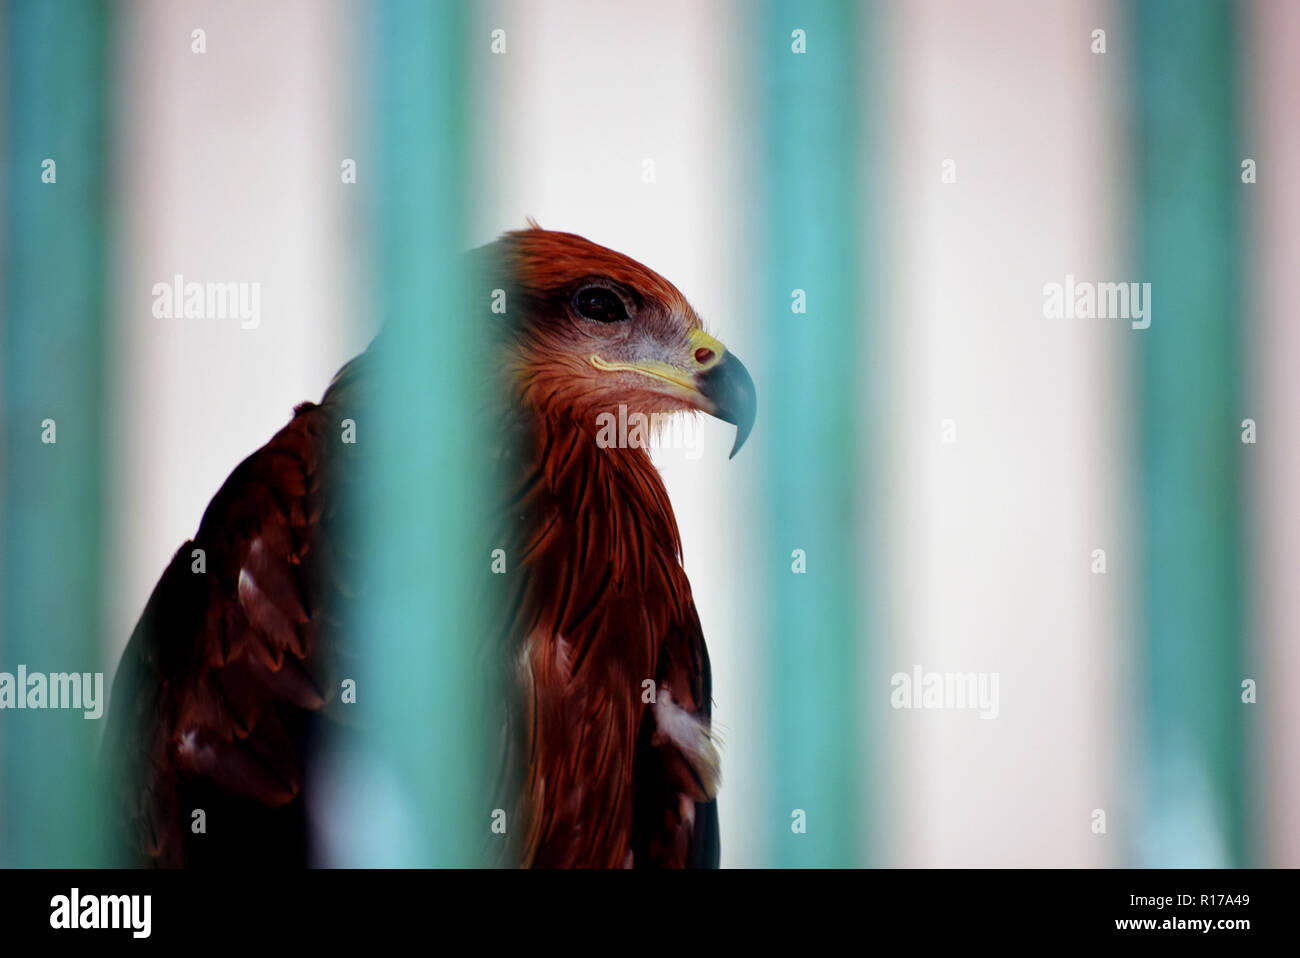 The golden eagle is one of the best-known birds of prey in the Northern Hemisphere. It is the most widely distributed species of eagle. - Stock Image